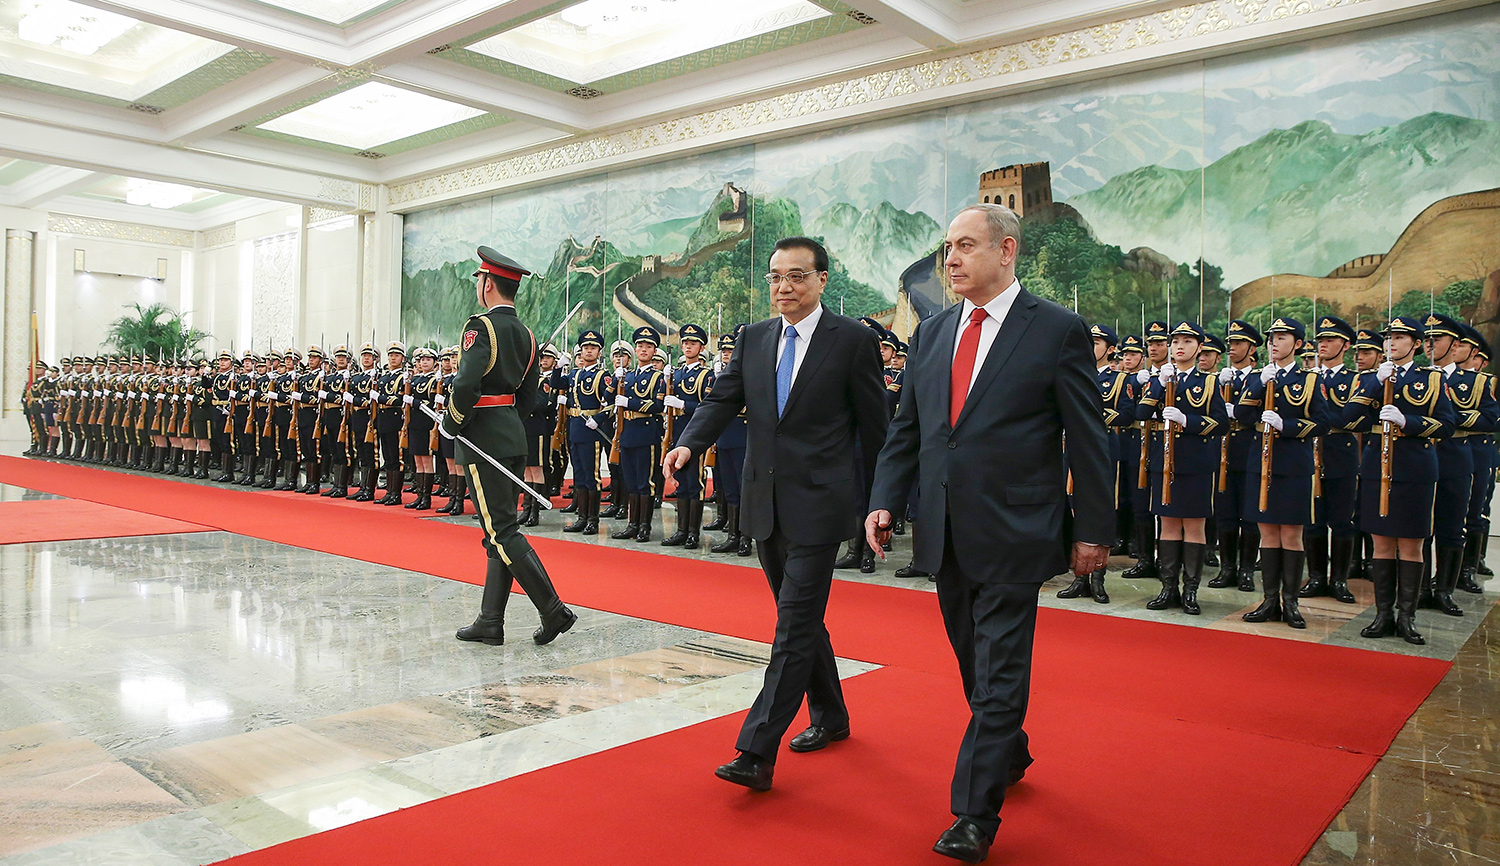 Chinese Premier Li Keqiang accompanies Israel Prime Minister Benjamin Netanyahu at a welcoming ceremony in Beijing on March 20, 2017. (Lintao Zhang/Getty Images)